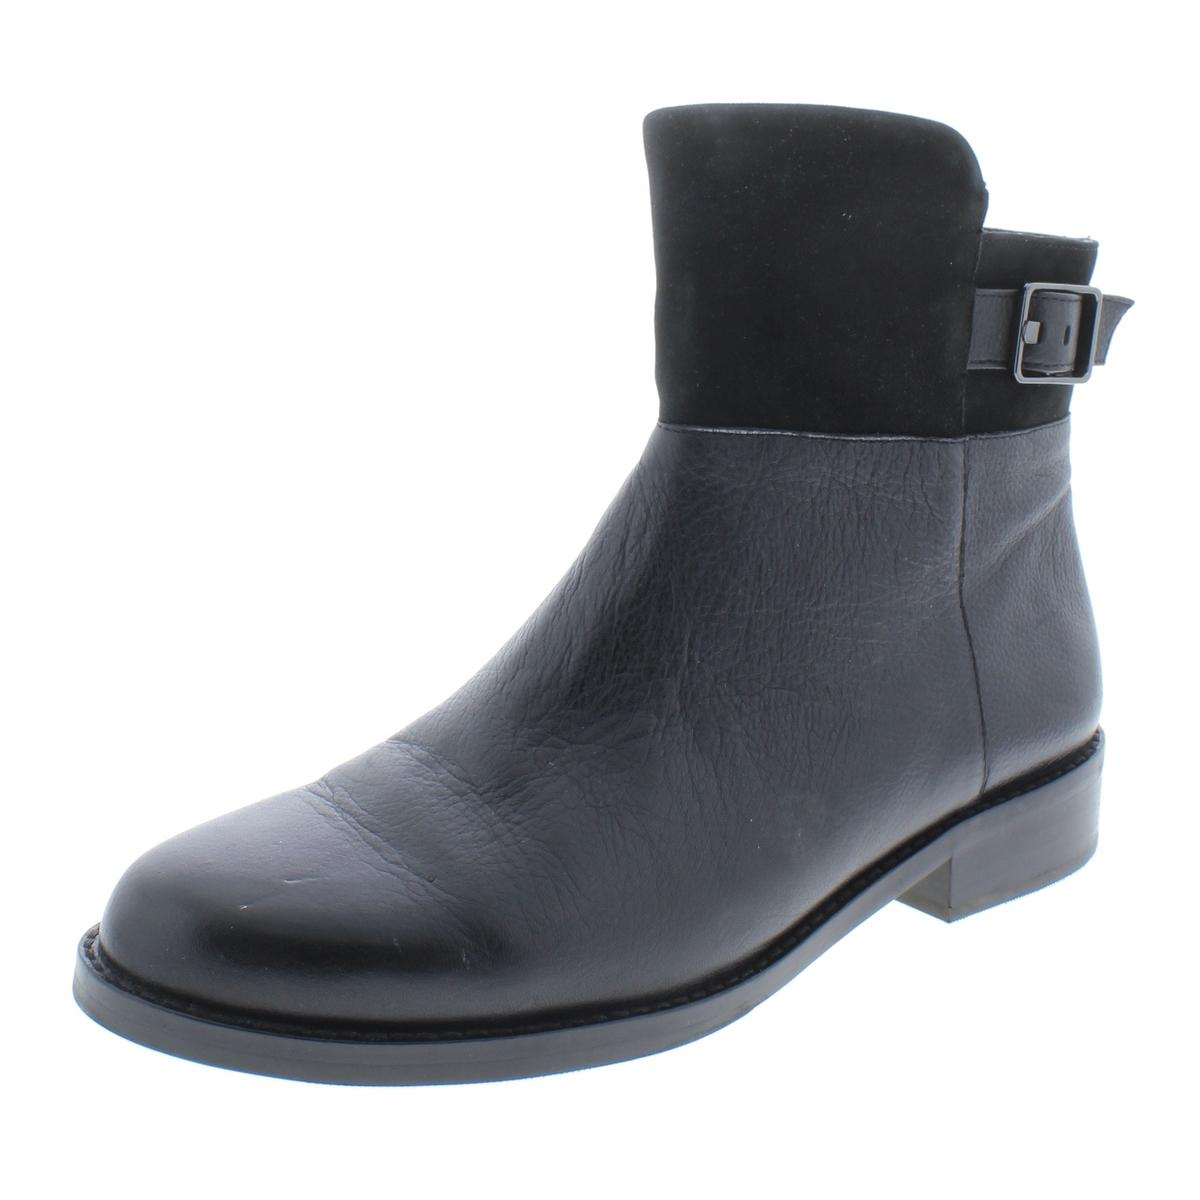 French Connection Womens Greecia Black Booties shoes 8.5 Medium (B,M) BHFO 5664